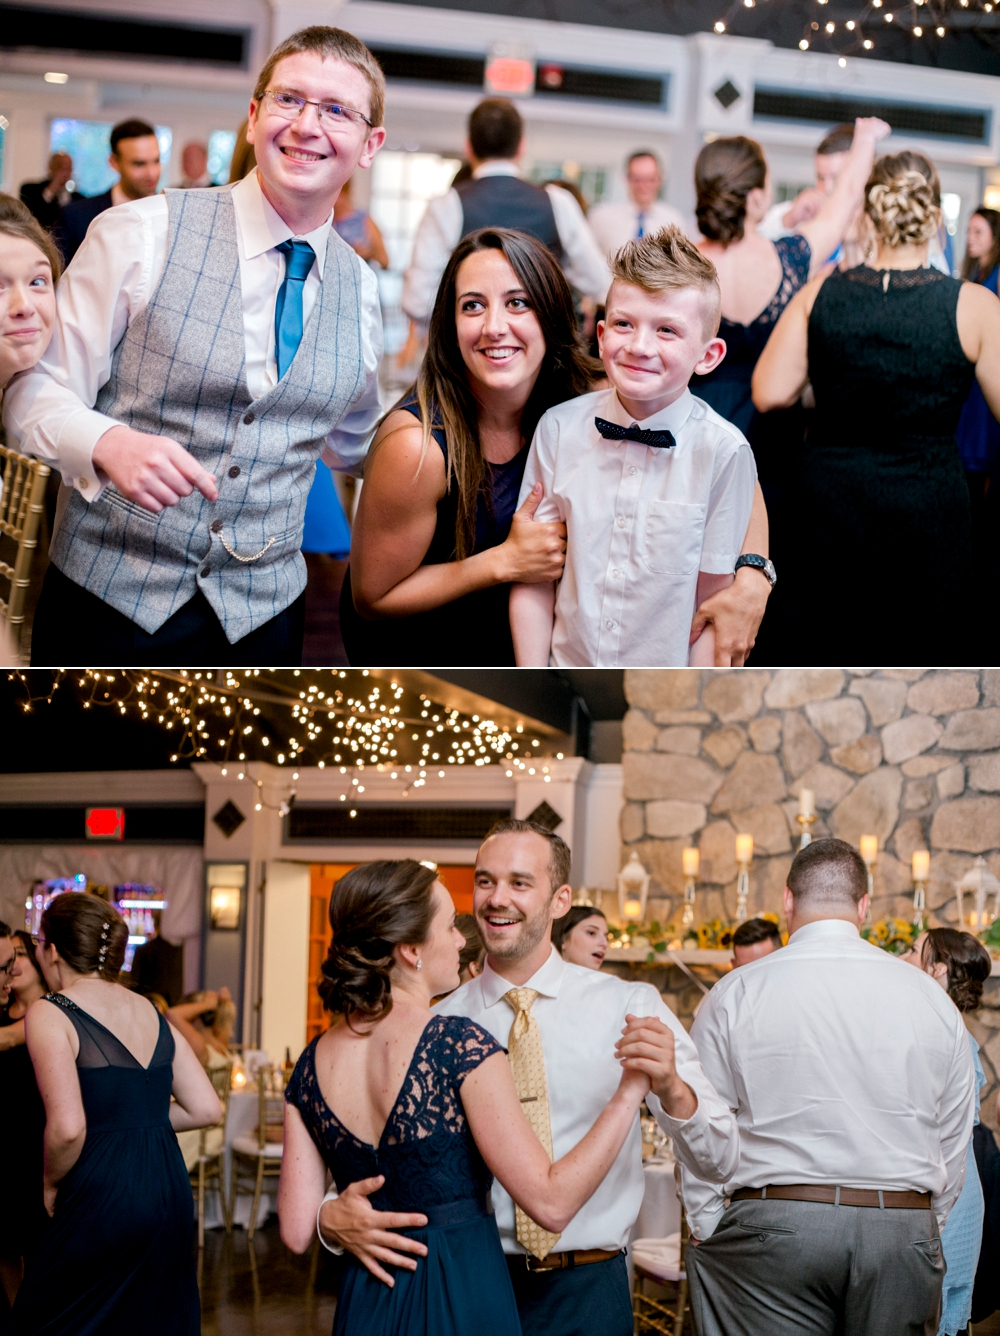 SomerbyJonesPhotography__RiverClub_RiverClubWedding_SouthShoreWedding_0049.jpg